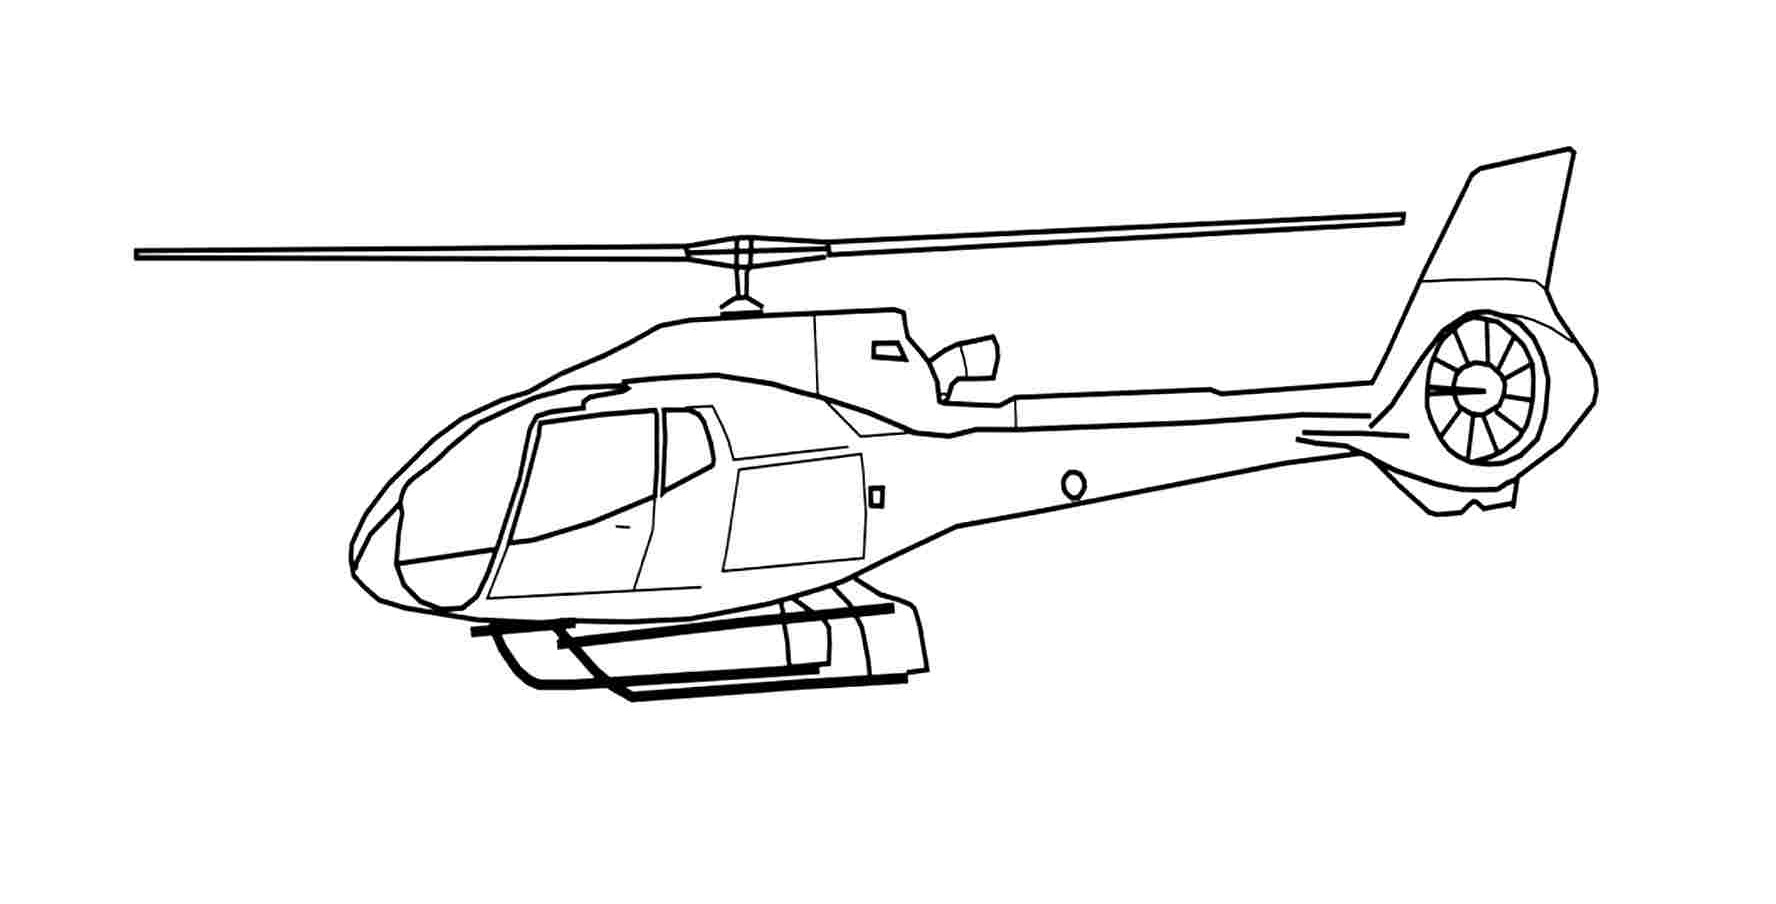 helicopter colouring pages free printable helicopter coloring pages for kids helicopter pages colouring 1 1